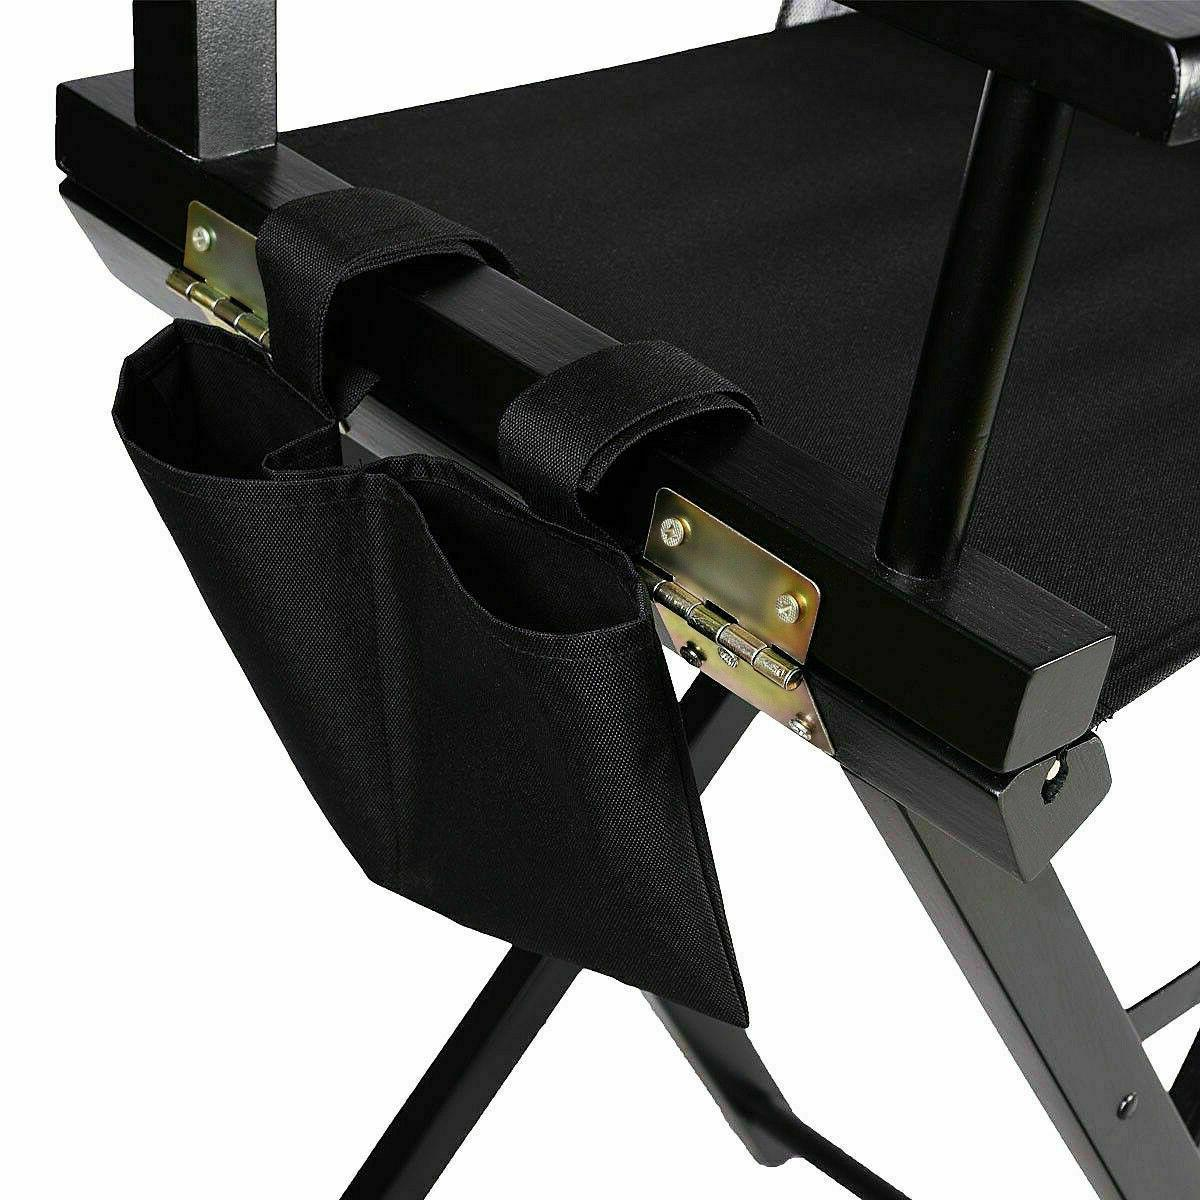 Foldable Wood Chair Makeup Weight w/ Side Bags